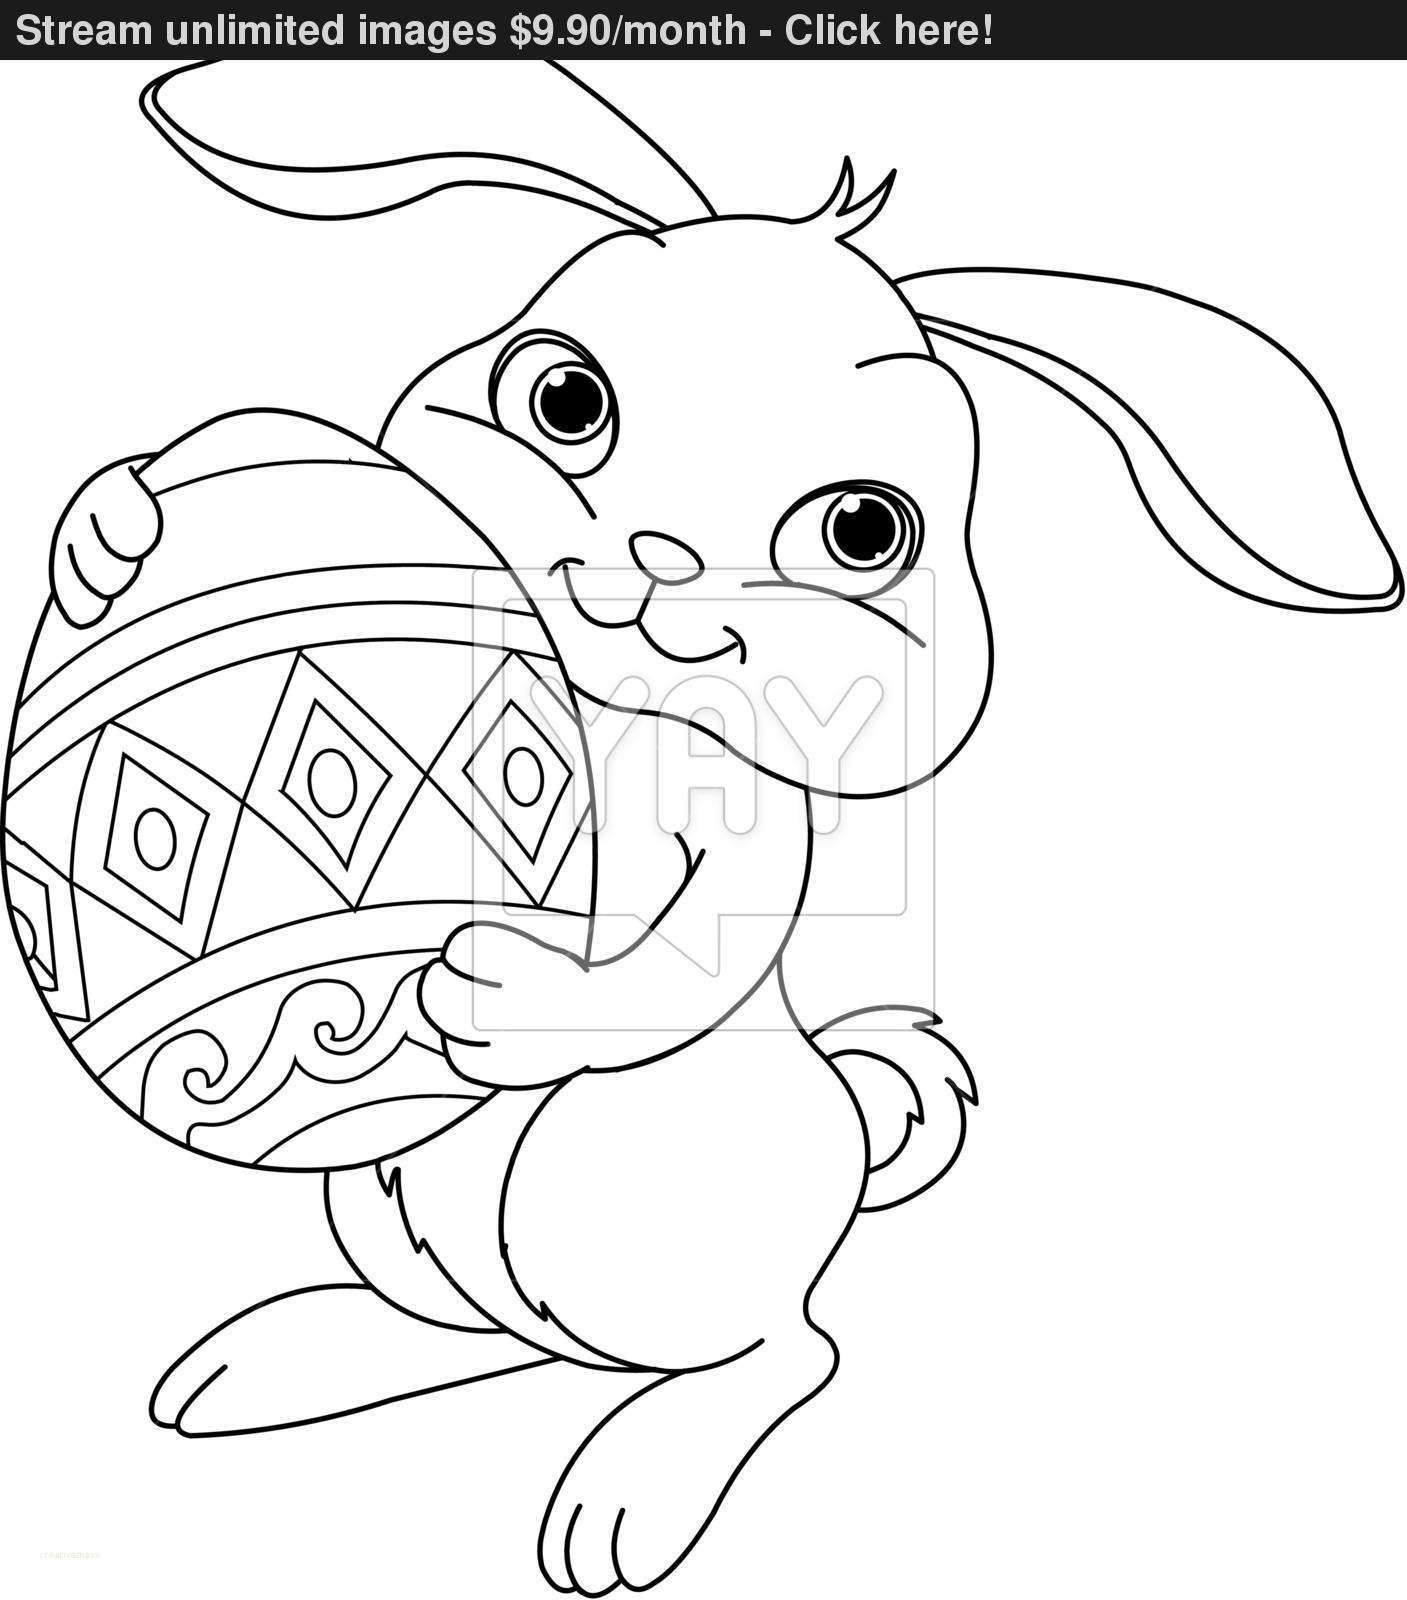 Simple Bunny Face Drawing at GetDrawings.com | Free for personal use ...